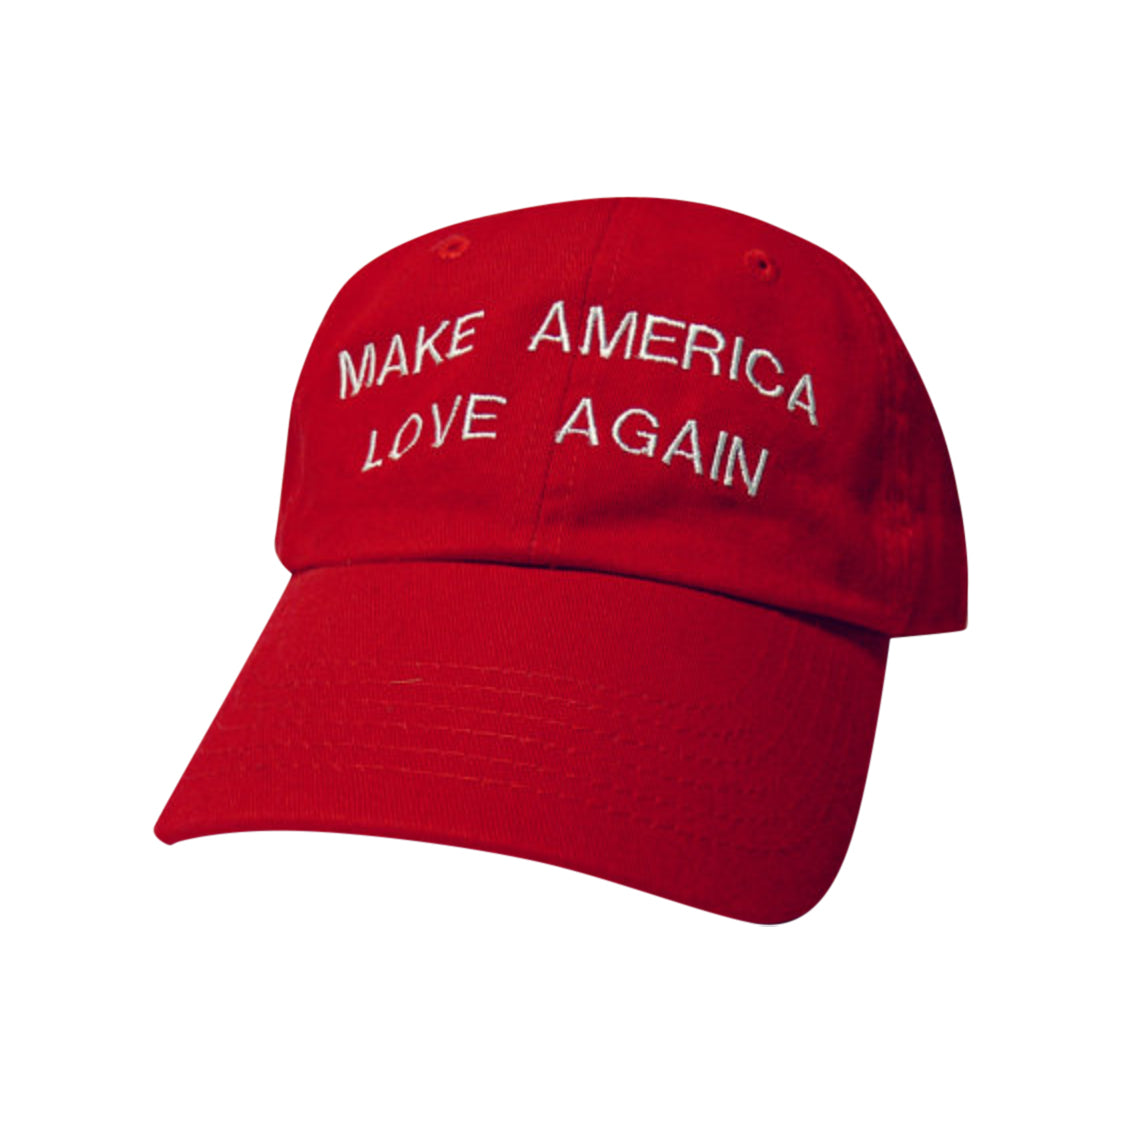 Make America Love Again Baseball Cap